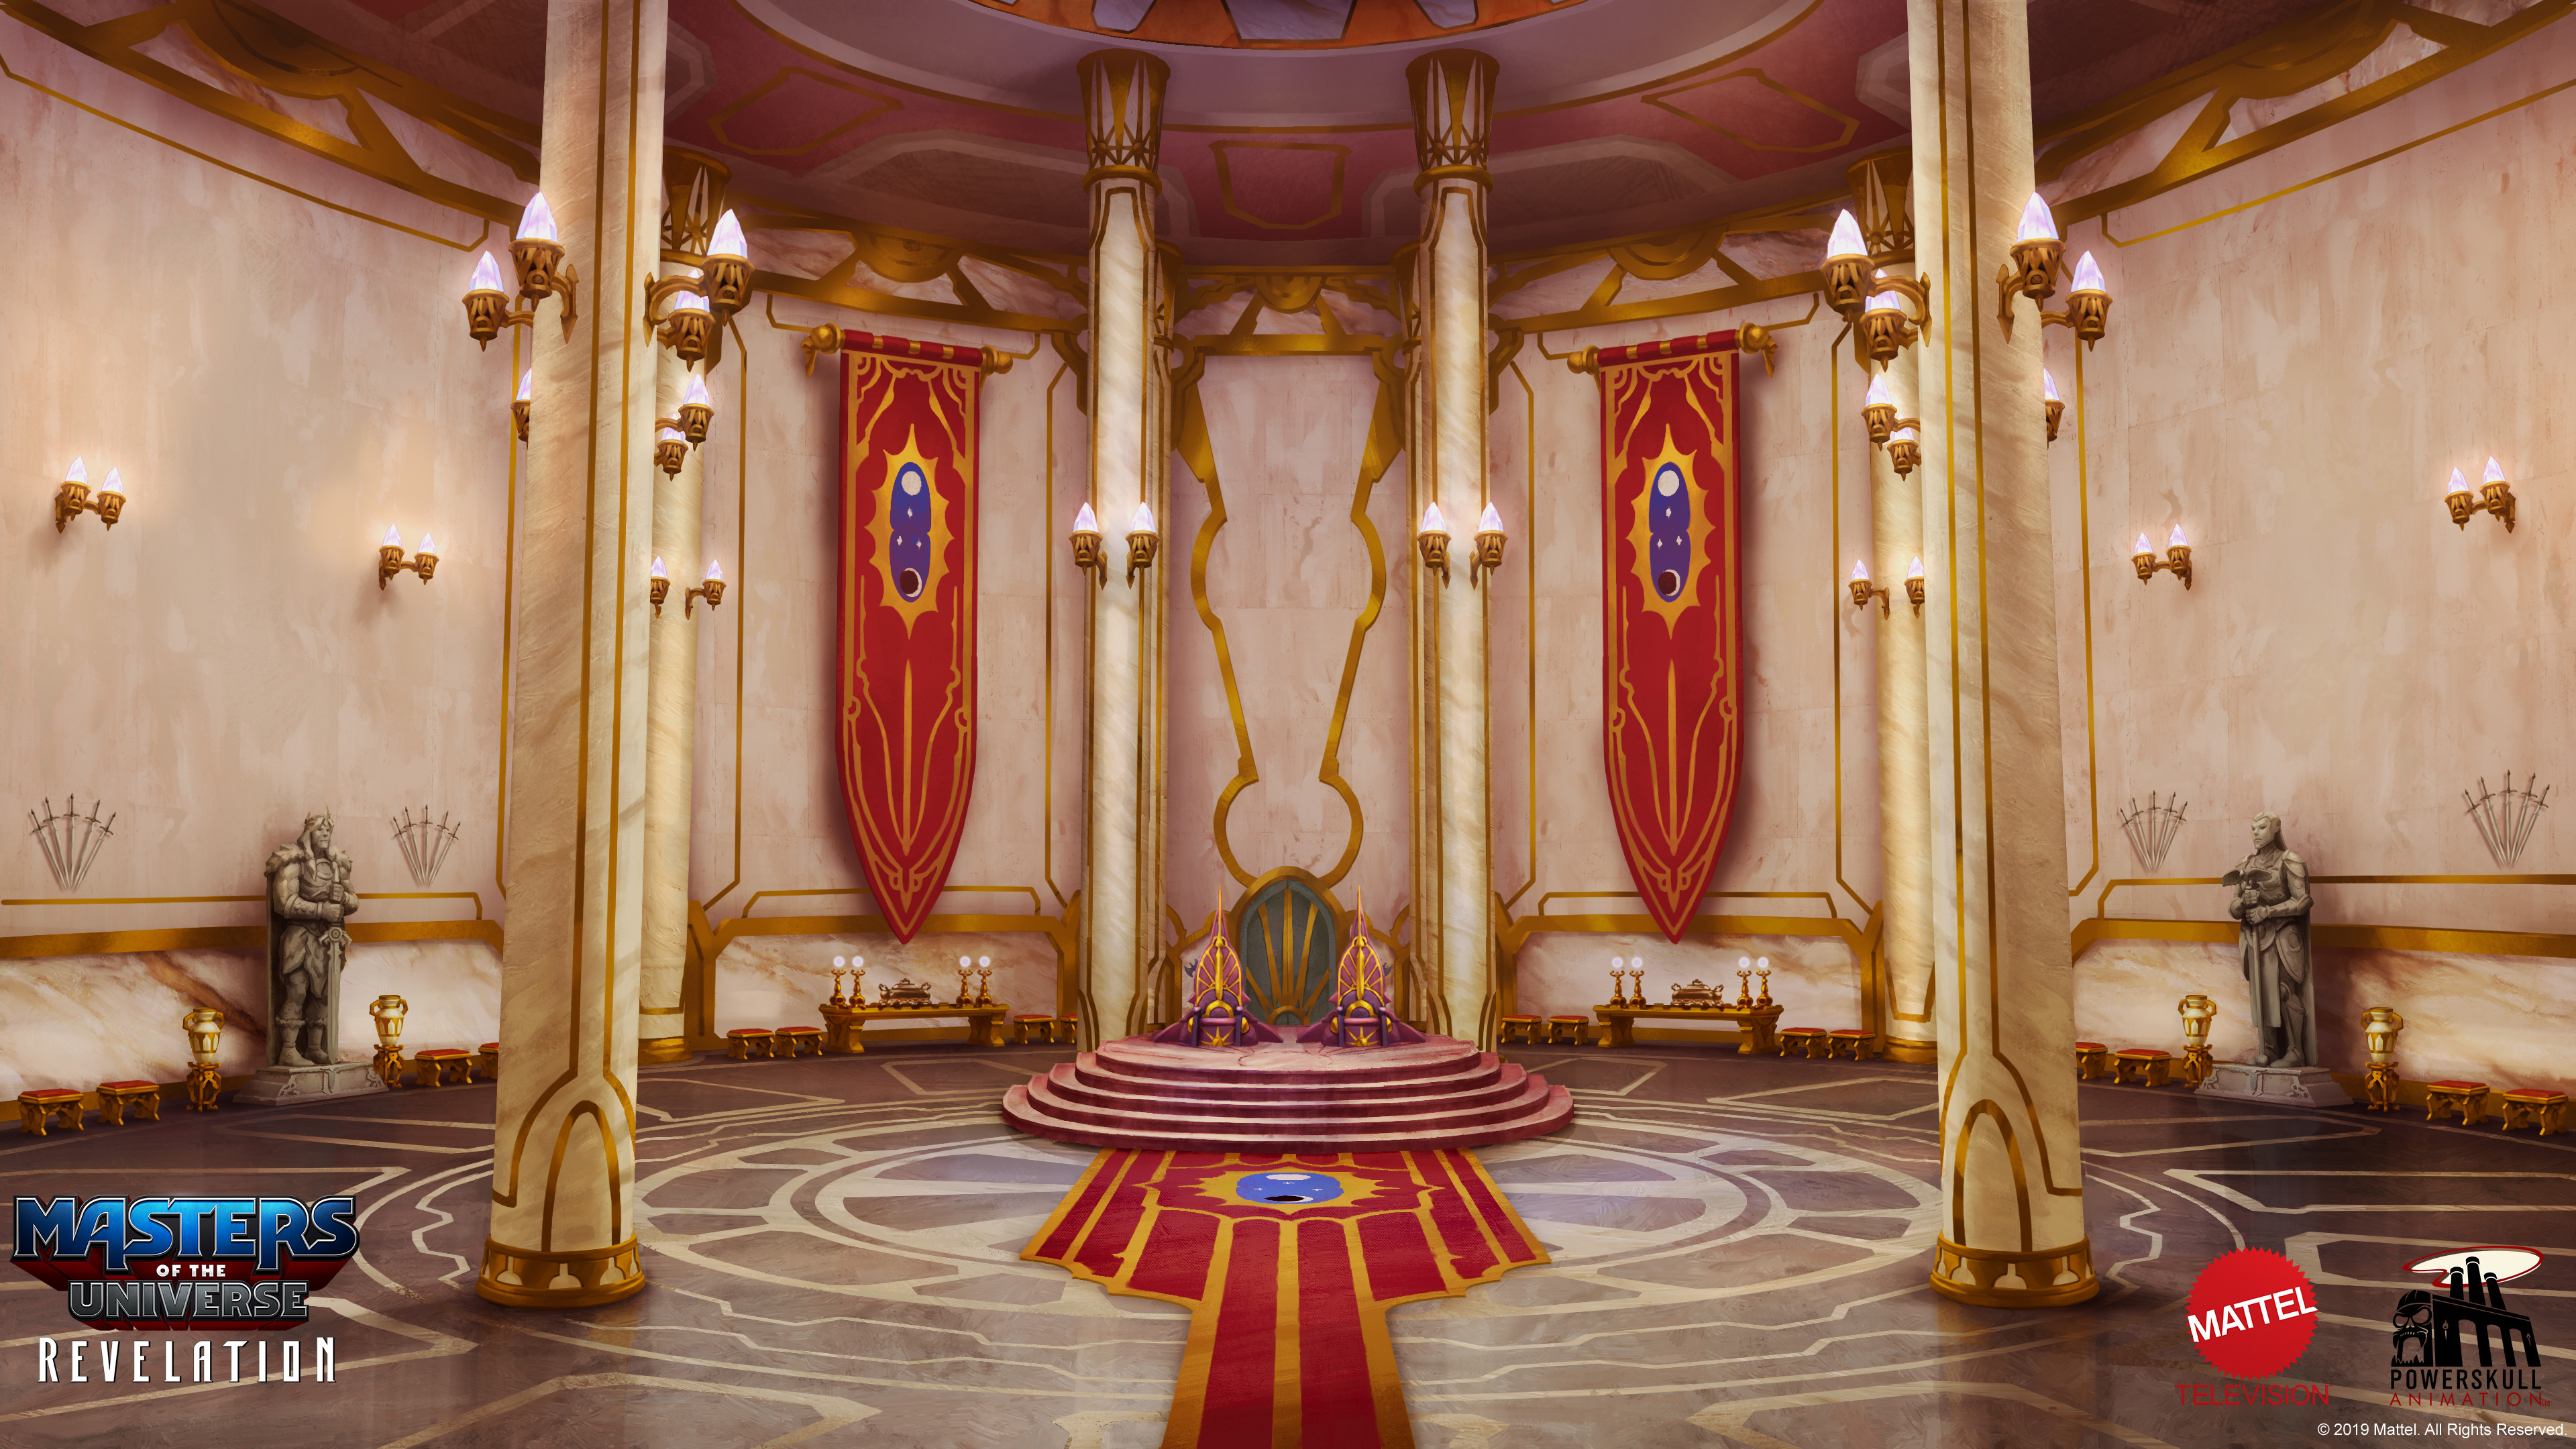 The Royal Palace Throne room